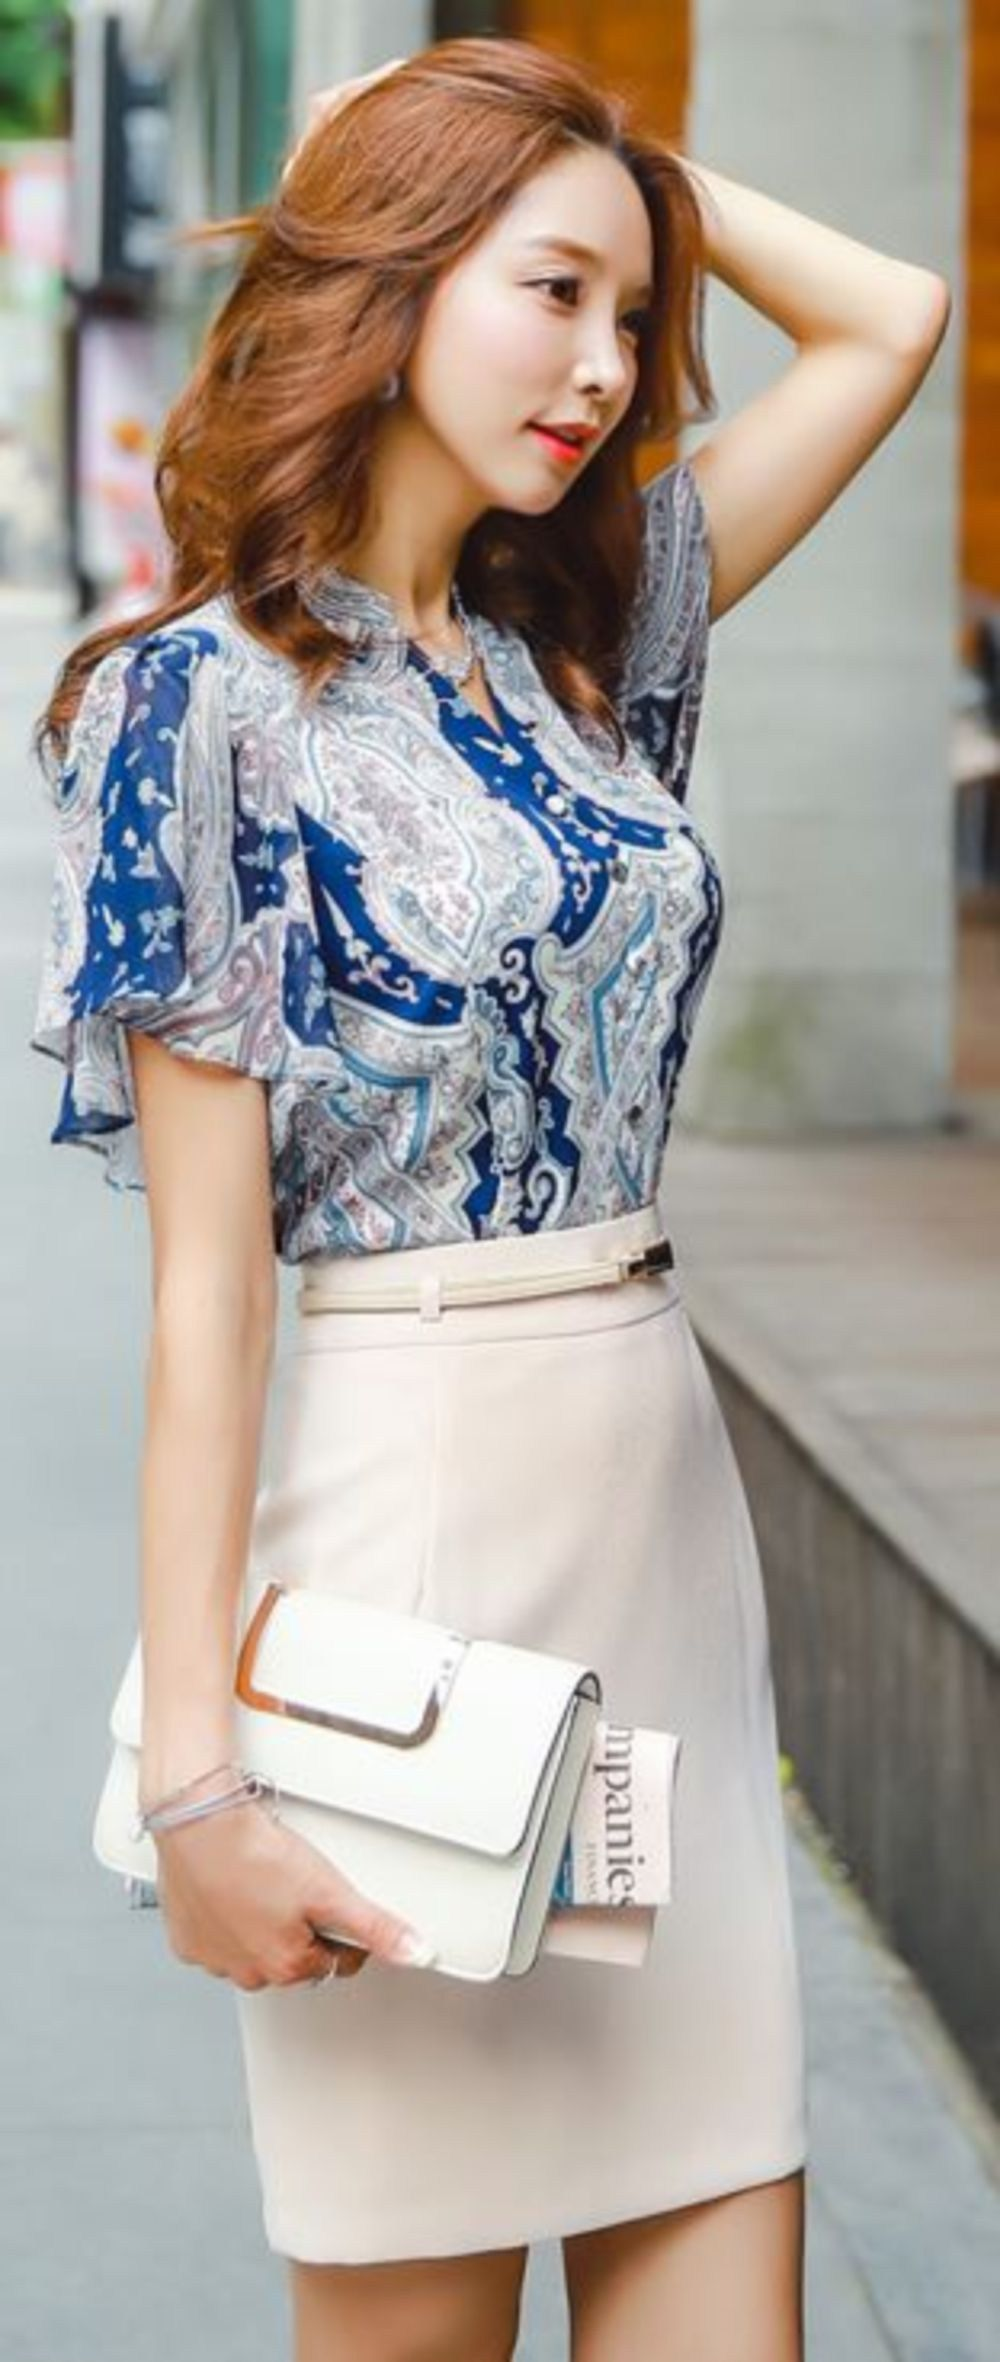 Fashionable work outfits for women 2017 048 , Fashionetter